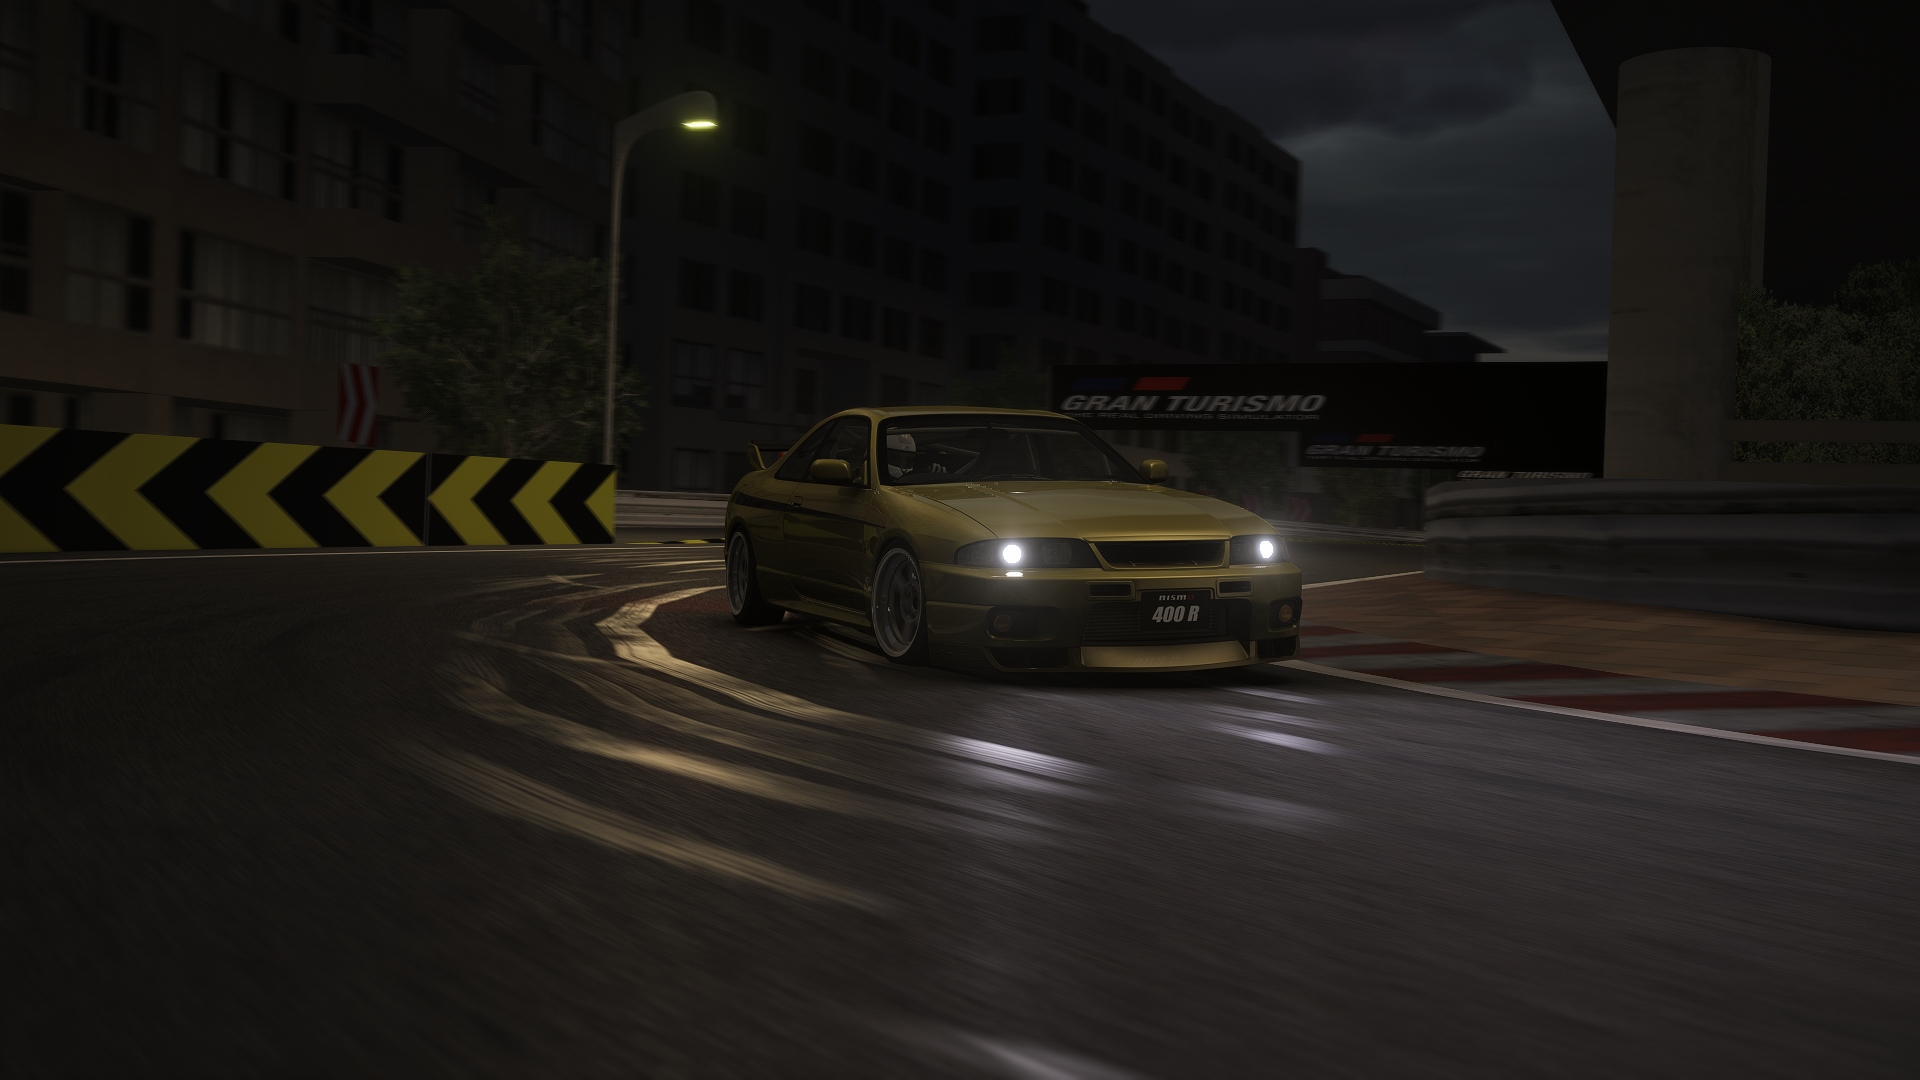 Screenshot_sts_r33_gtr_s3_n1_tuned_400r_special_stage_route_5_1-6-121-2-0-6.jpg